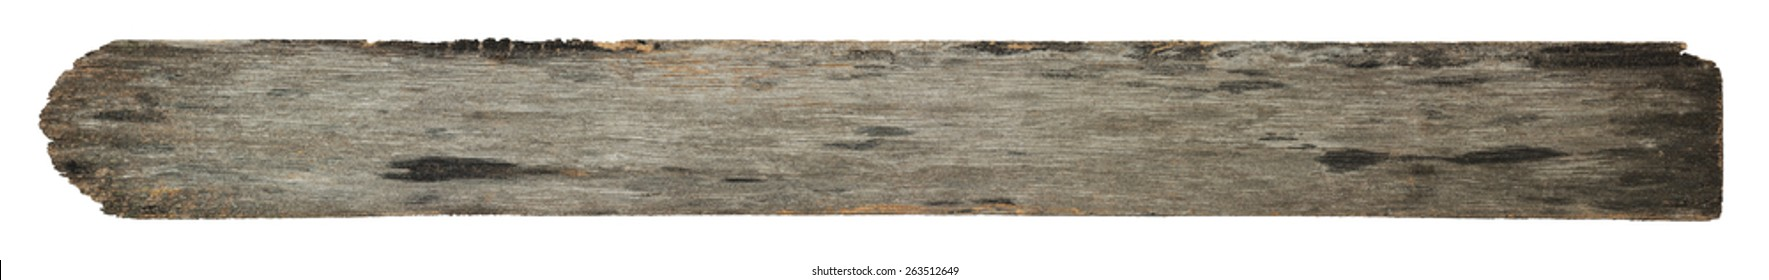 Old wood plank with texture isolated on white background.